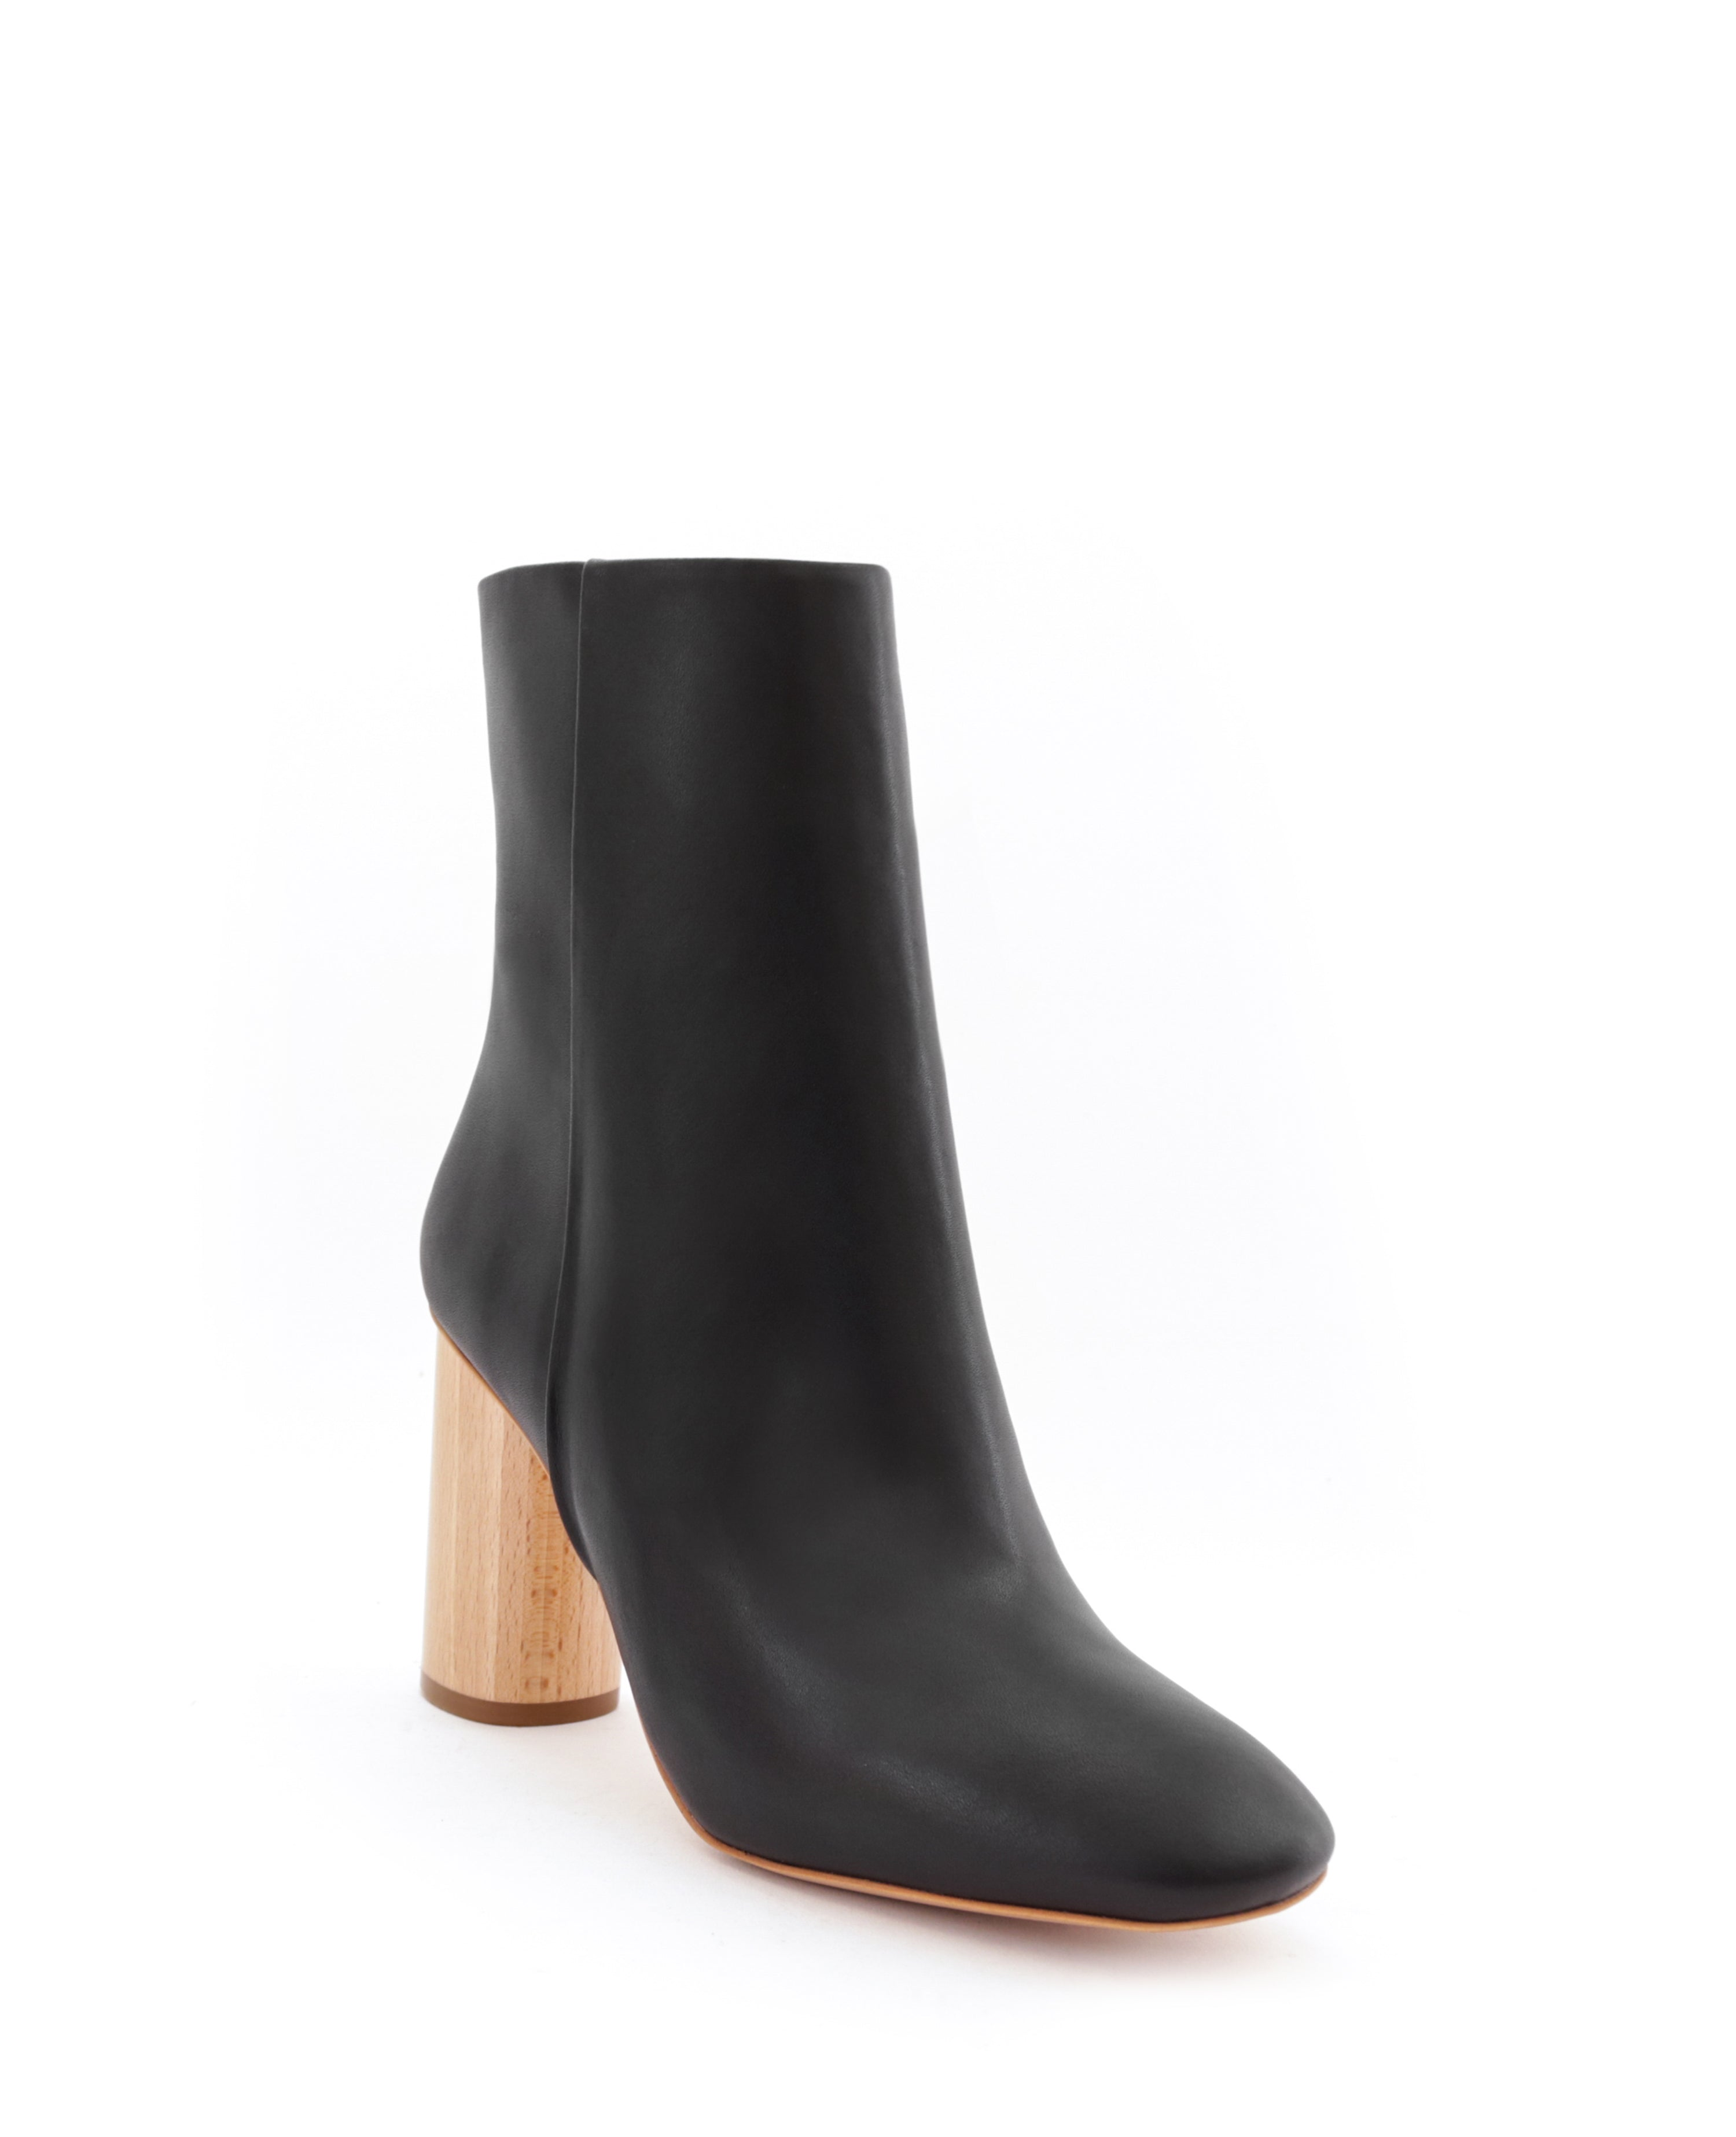 High ankle boot in black eco vegan leather, high heel in natural wood, side zipper.